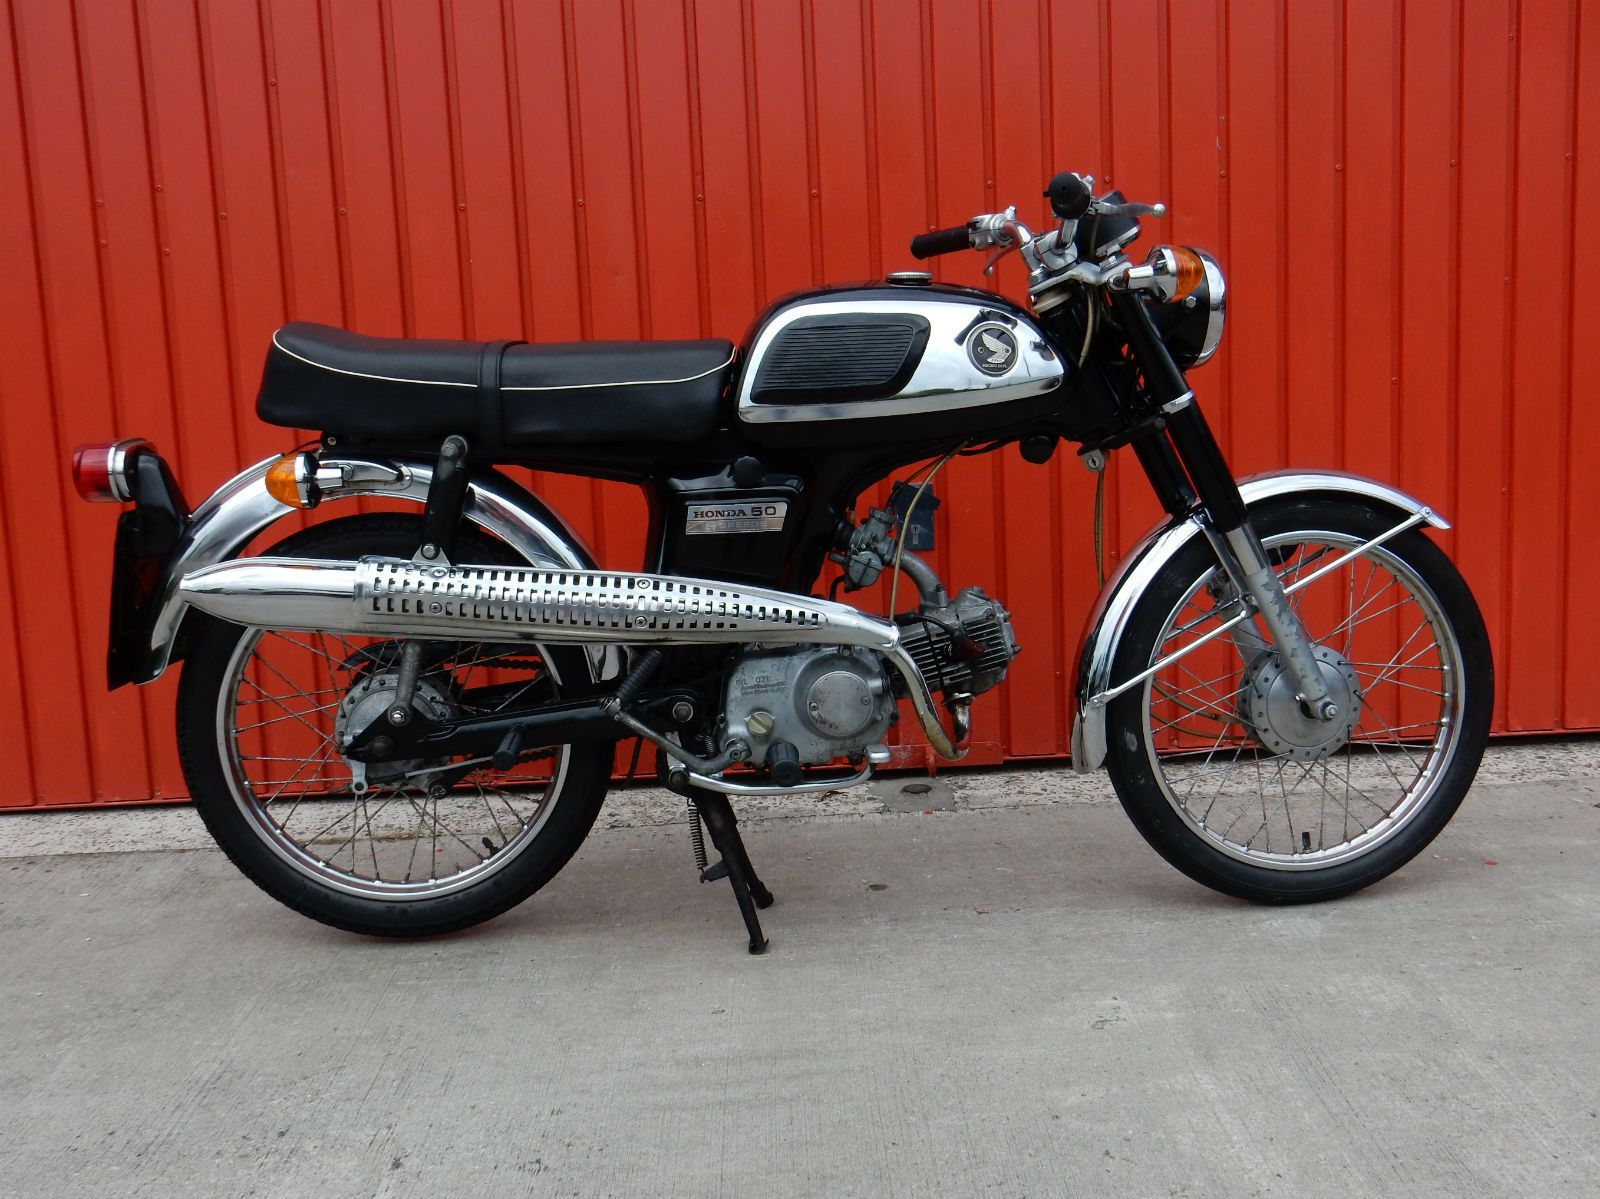 honda ss50 1970 50cc motorcycles pinterest honda mini bike and scooters. Black Bedroom Furniture Sets. Home Design Ideas